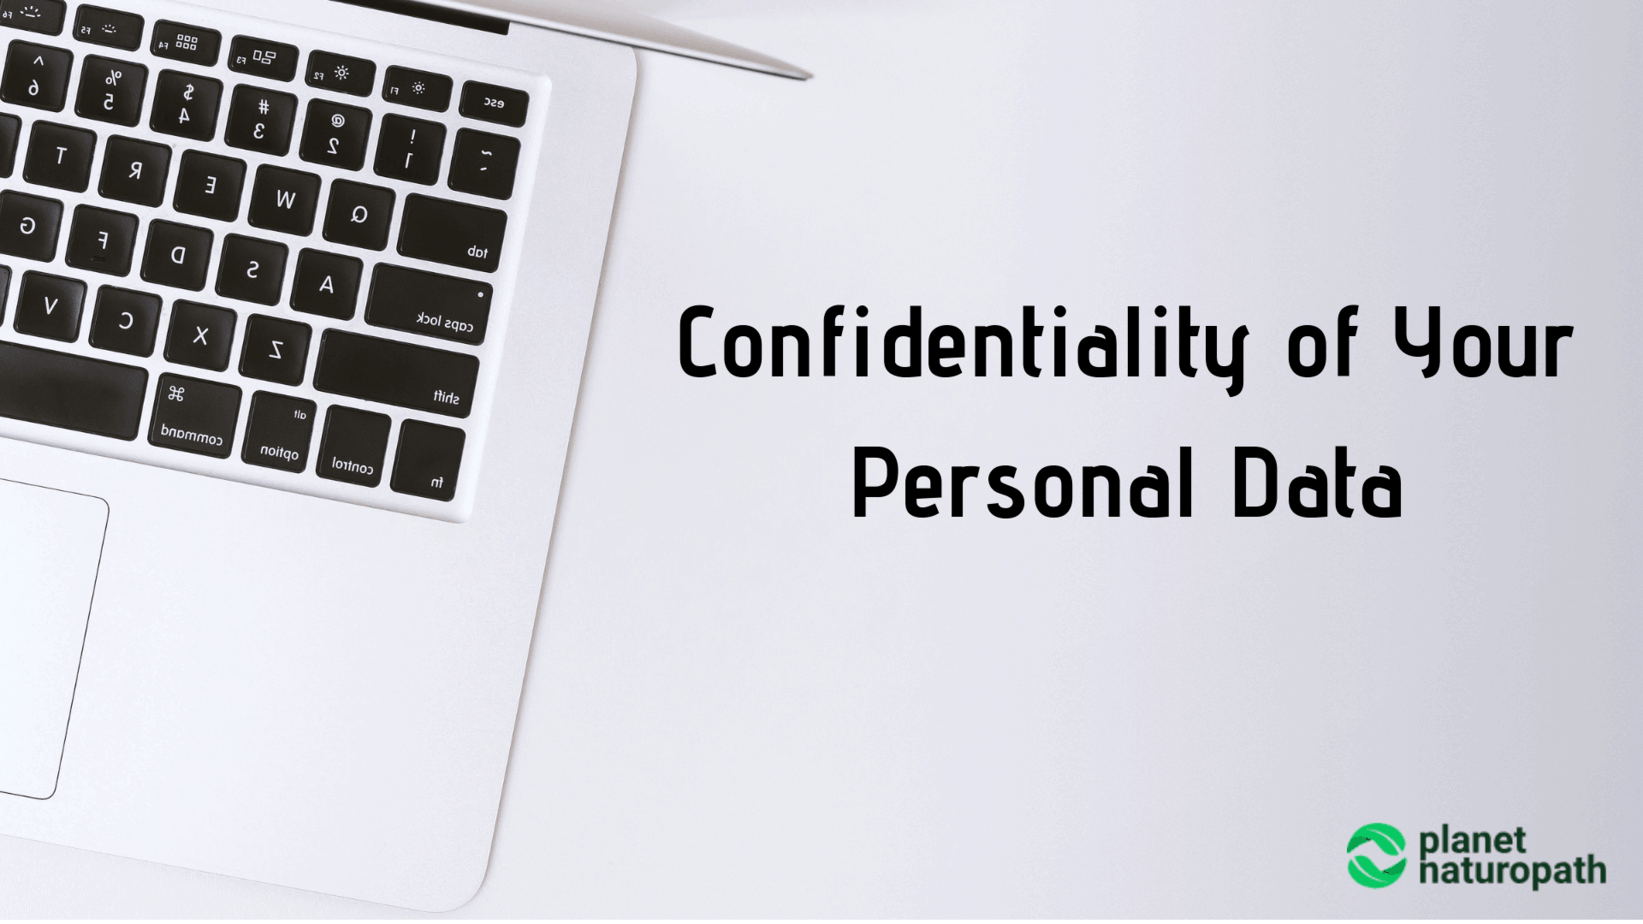 Confidentiality-of-Your-Personal-Data